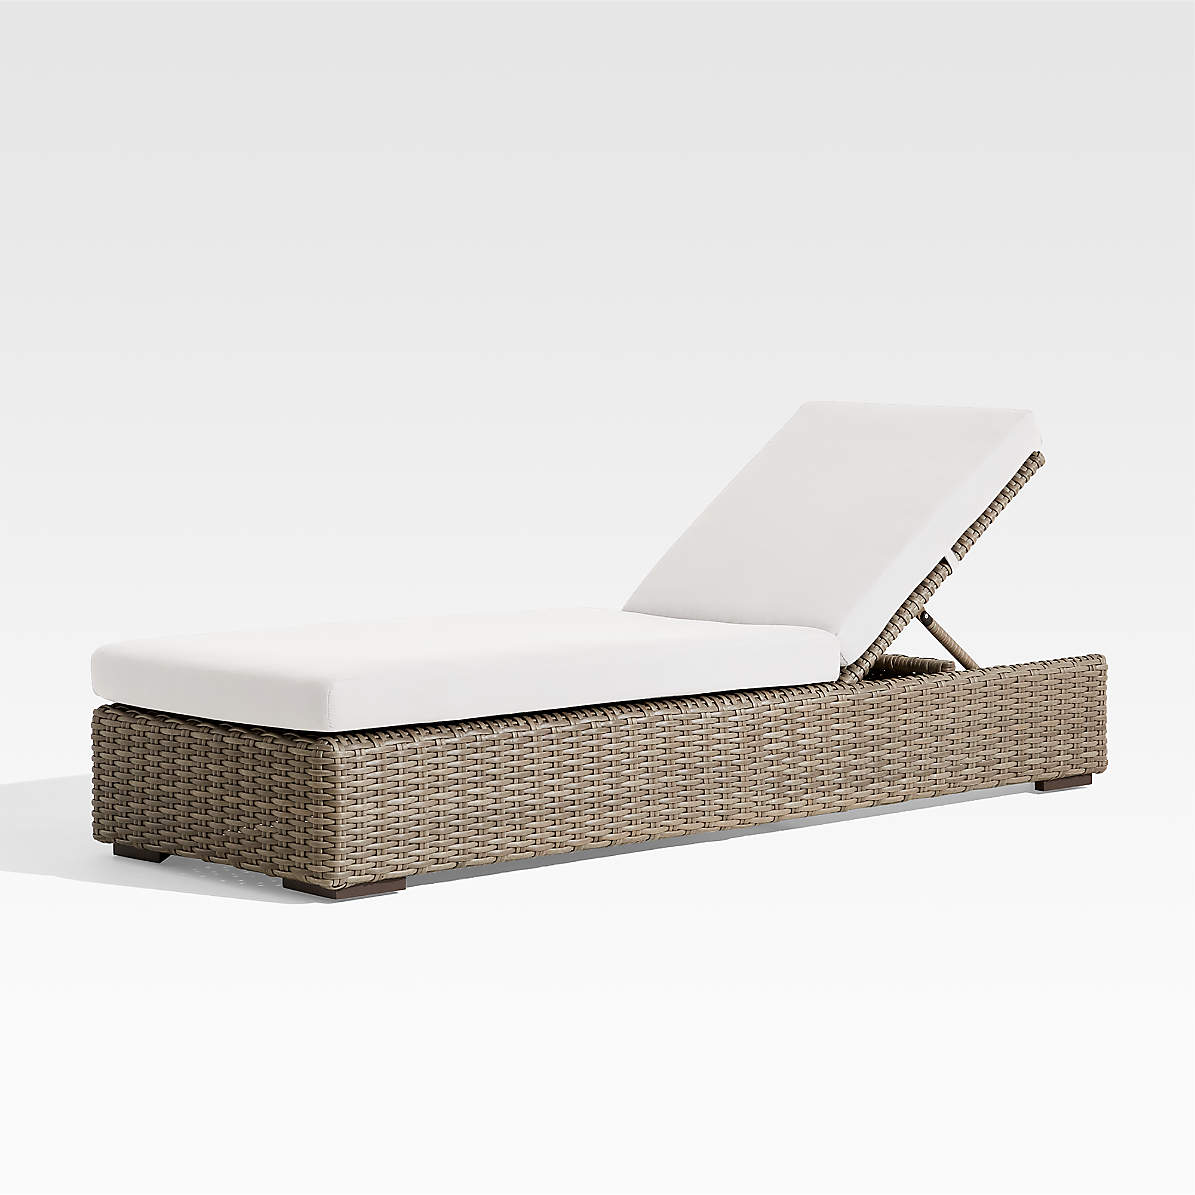 Abaco Outdoor Chaise Lounge With White Sand Sunbrella Cushion Reviews Crate And Barrel